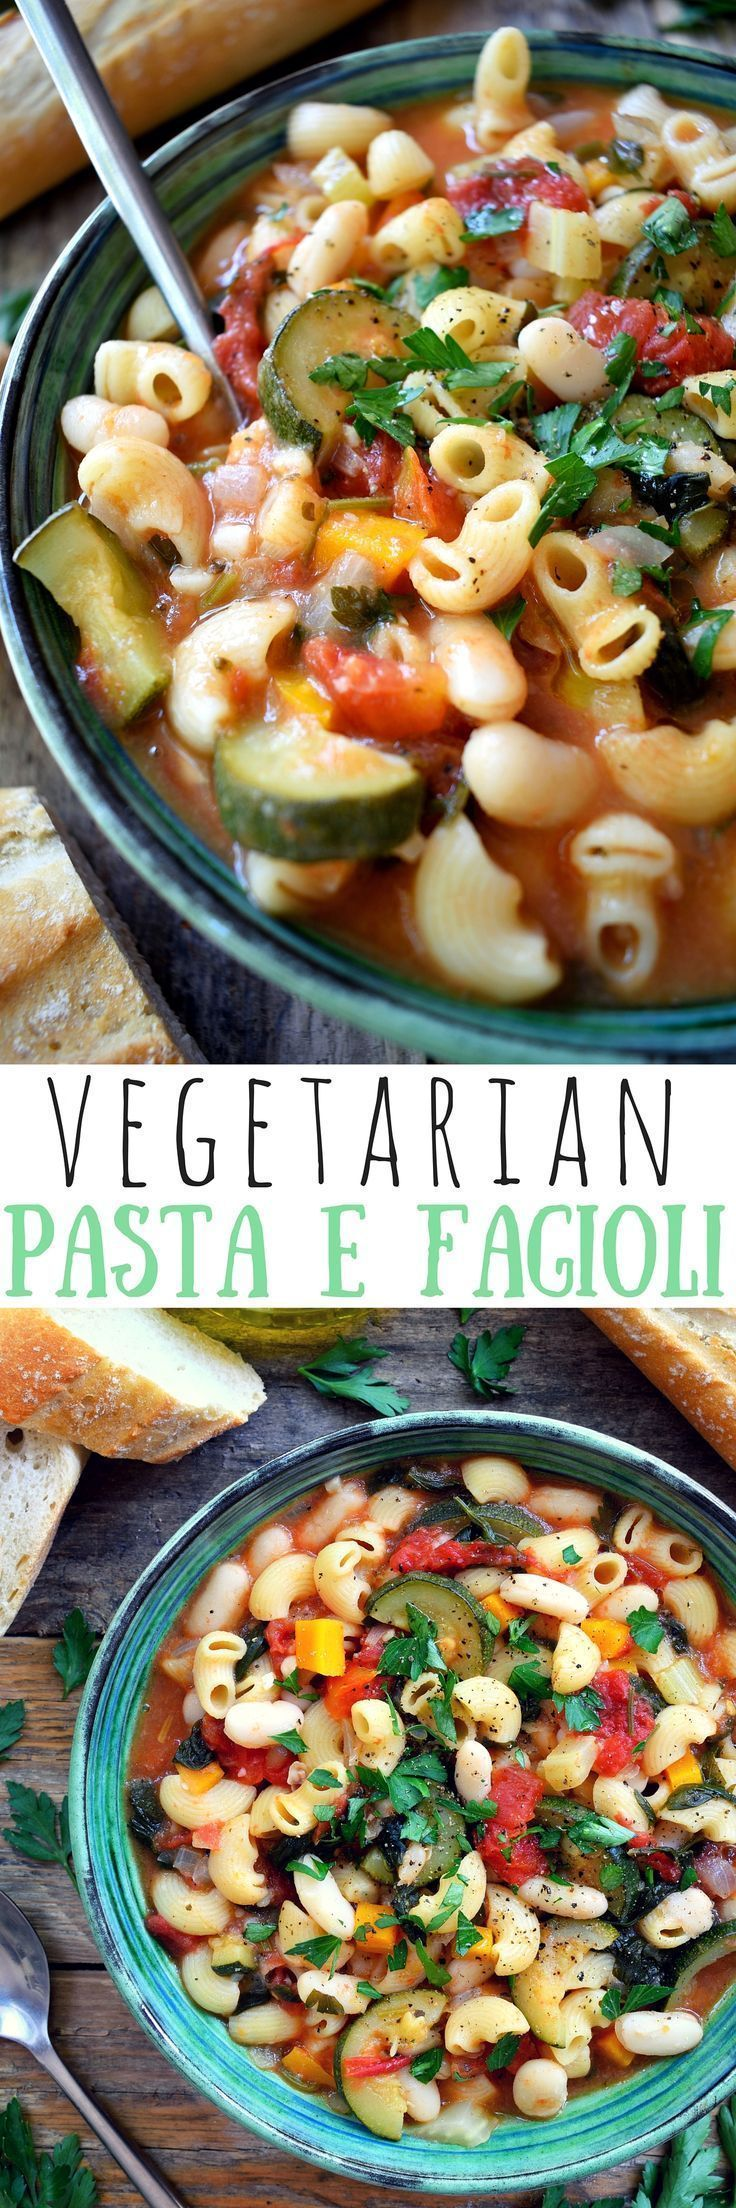 Vegetarian pasta fagioli is a simple, rustic Italian bean and pasta soup that's extremely easy to make and can be on the table in just about 30 minutes. What's fabulous about pasta e fagioli is that it's like two recipes in one – add a bit more stock for